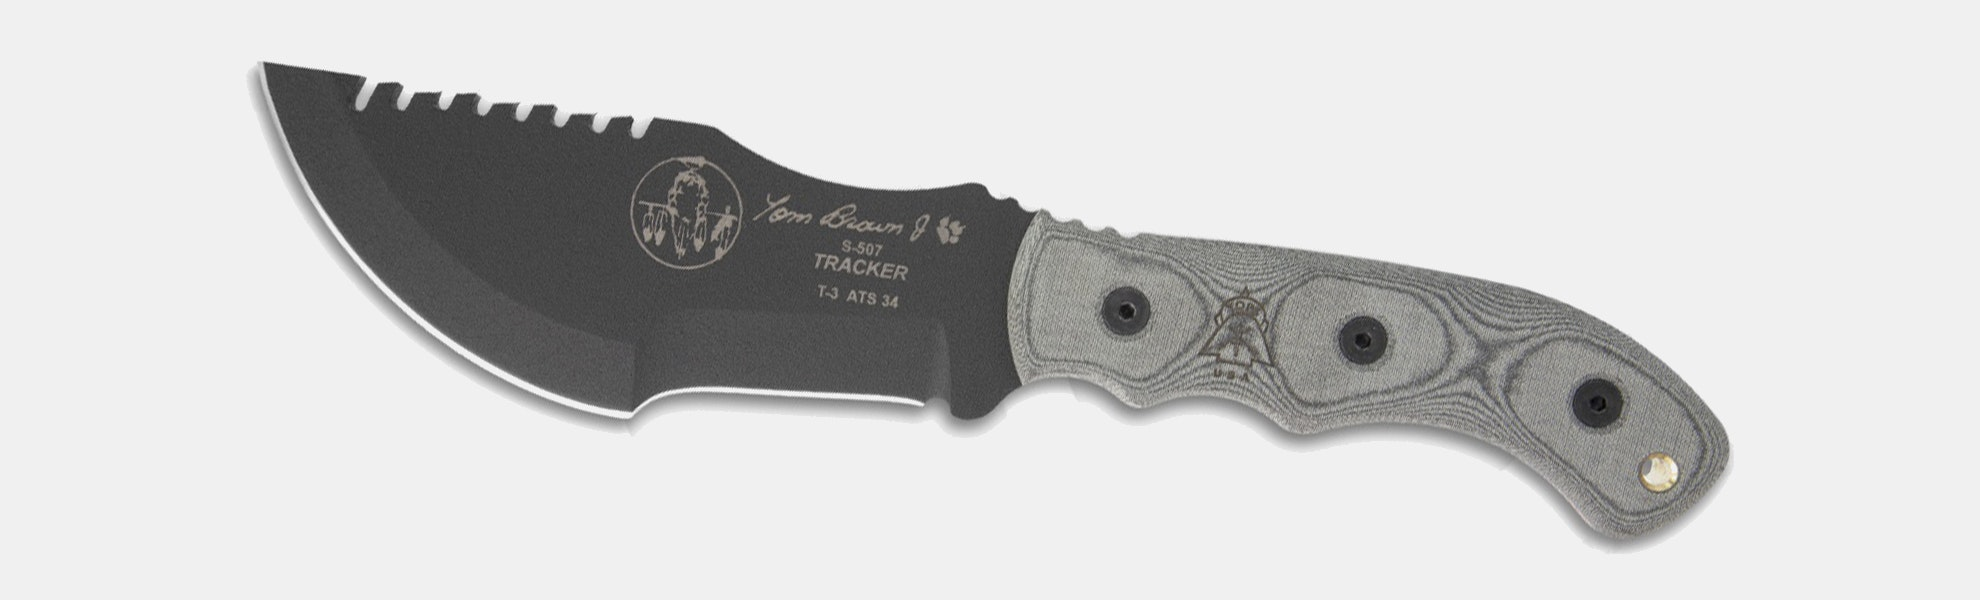 TOPS Tom Brown Tracker T-3 Fixed Blade Knife